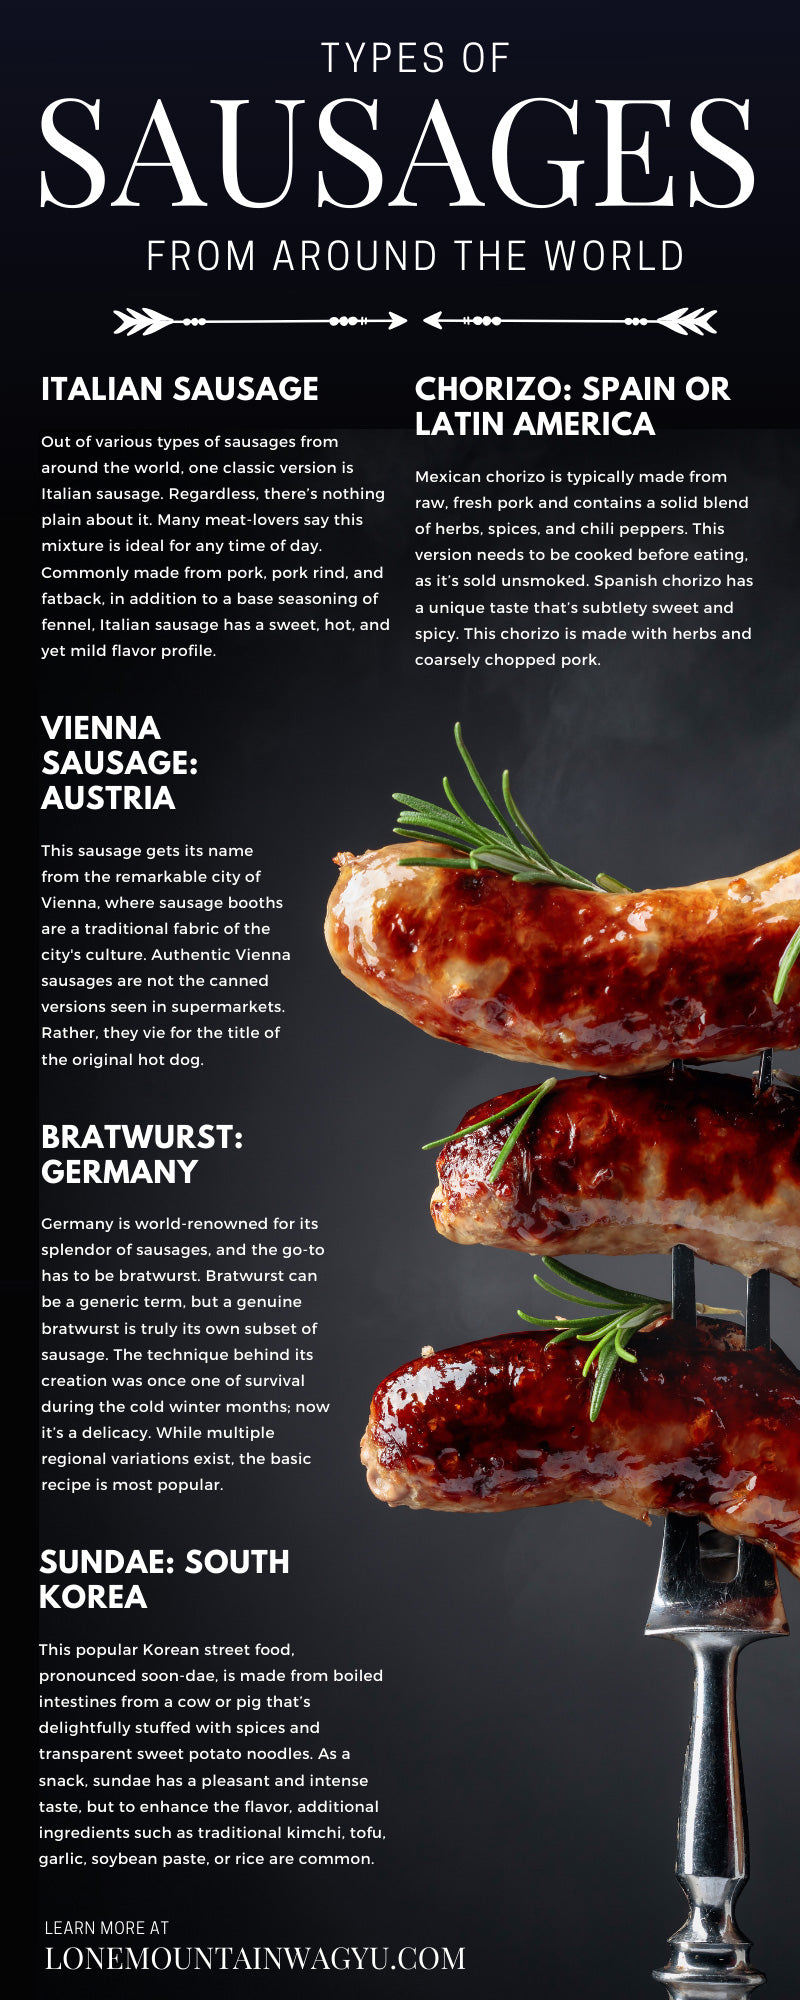 Types of Sausages From Around the World